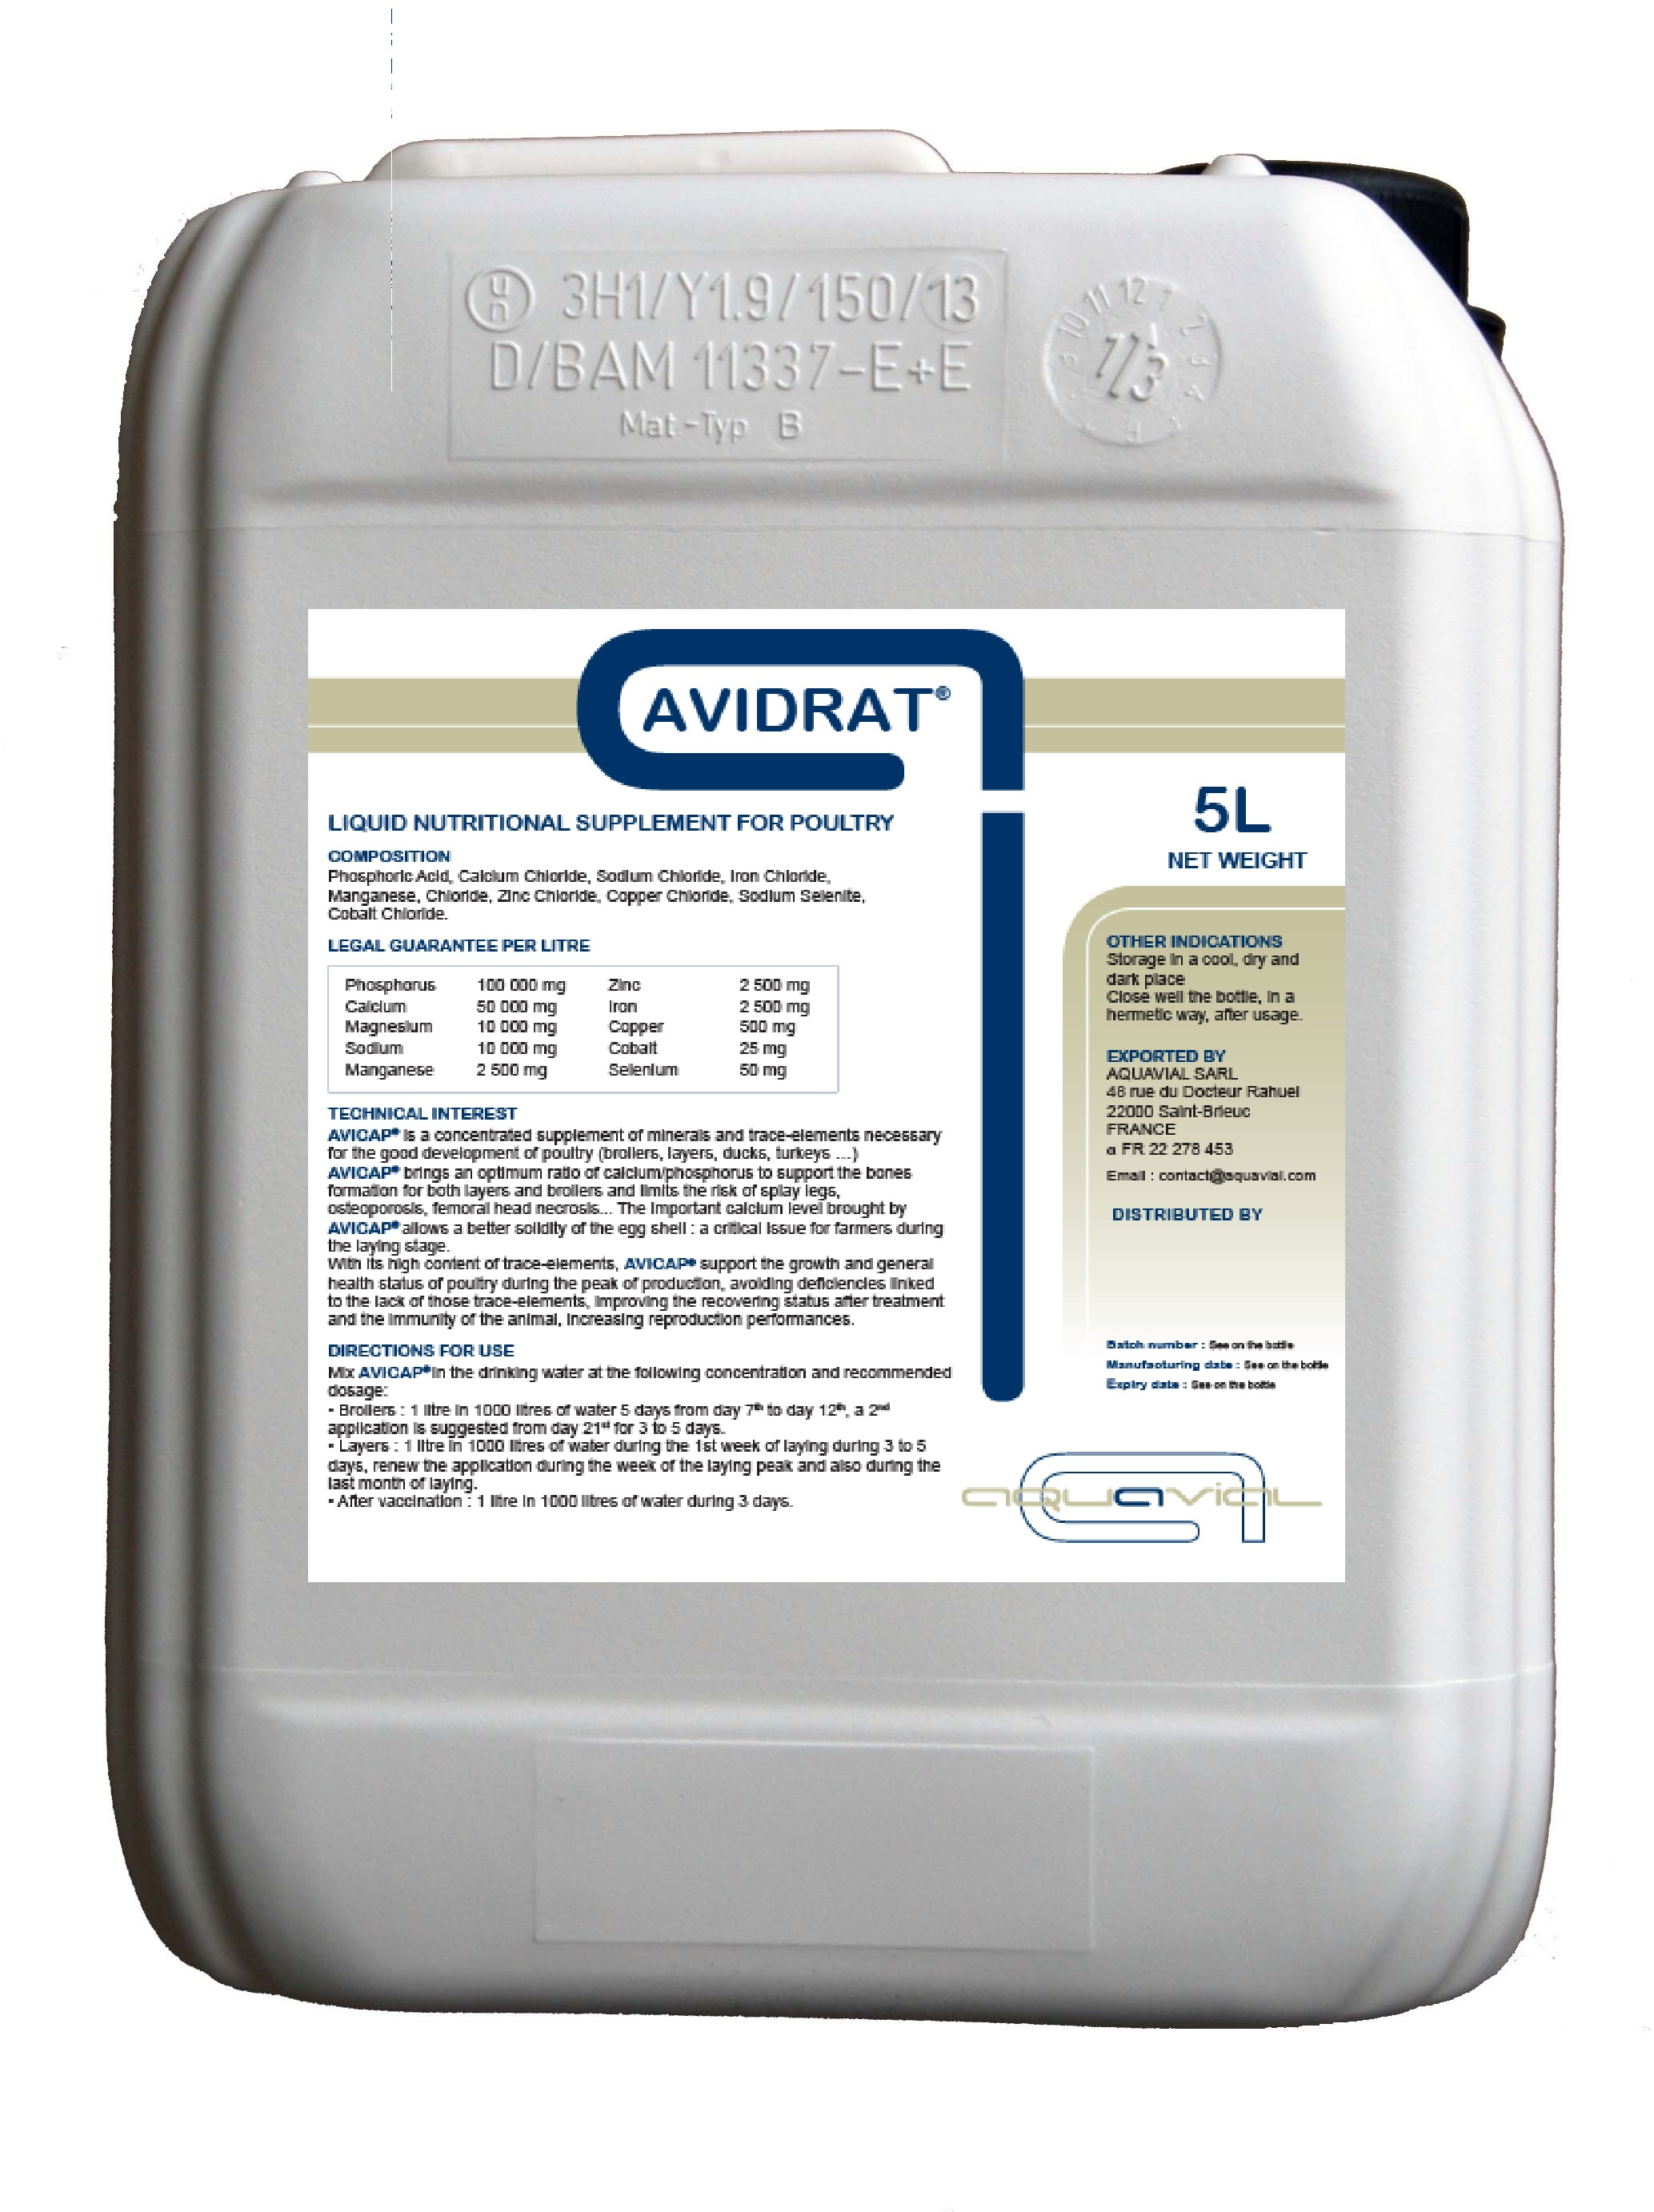 Avidrat - Aquavial liquid nutritional supplement for poultry